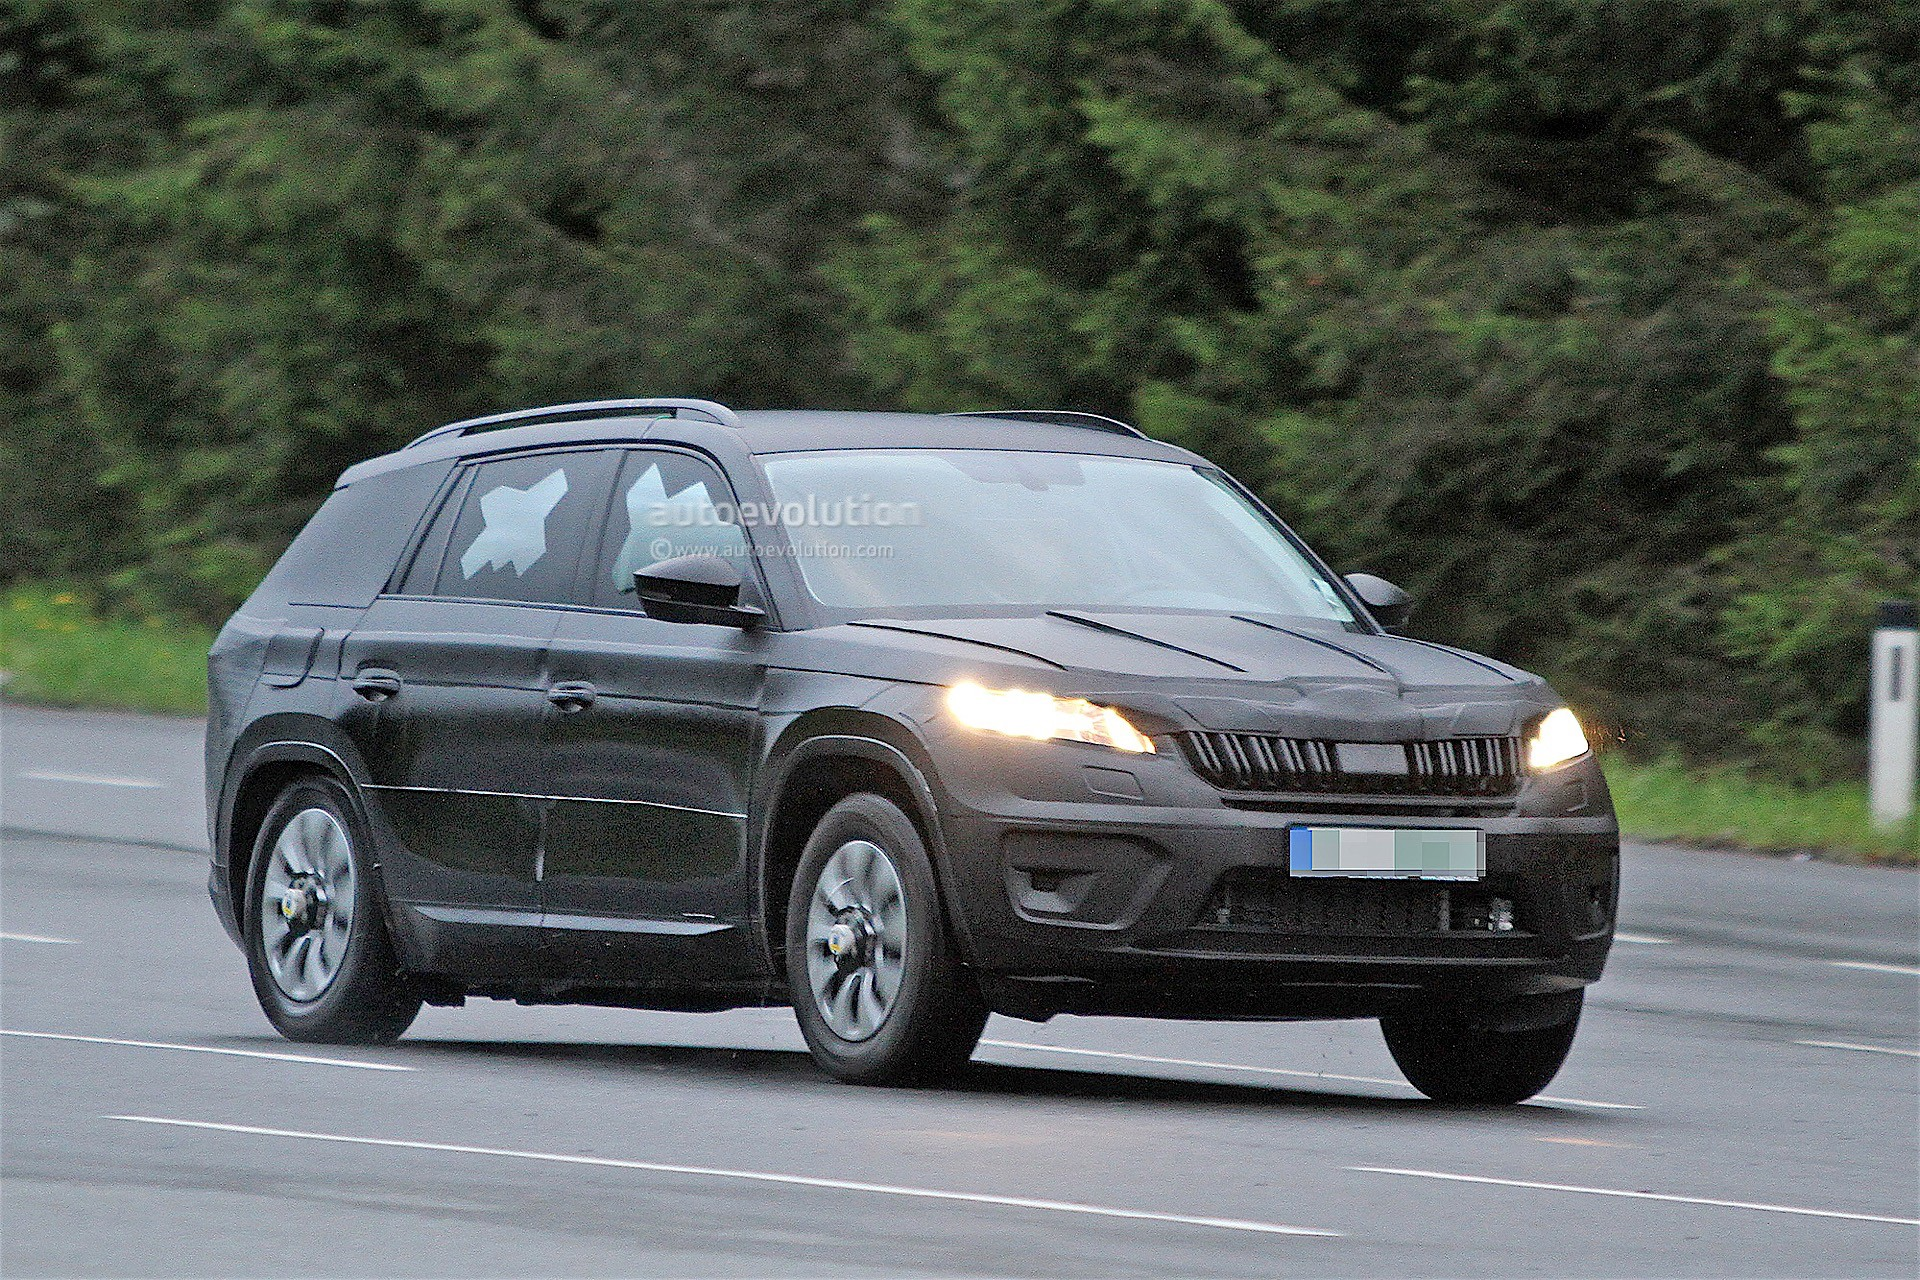 2017 skoda kodiaq makes public road test debut autoevolution. Black Bedroom Furniture Sets. Home Design Ideas